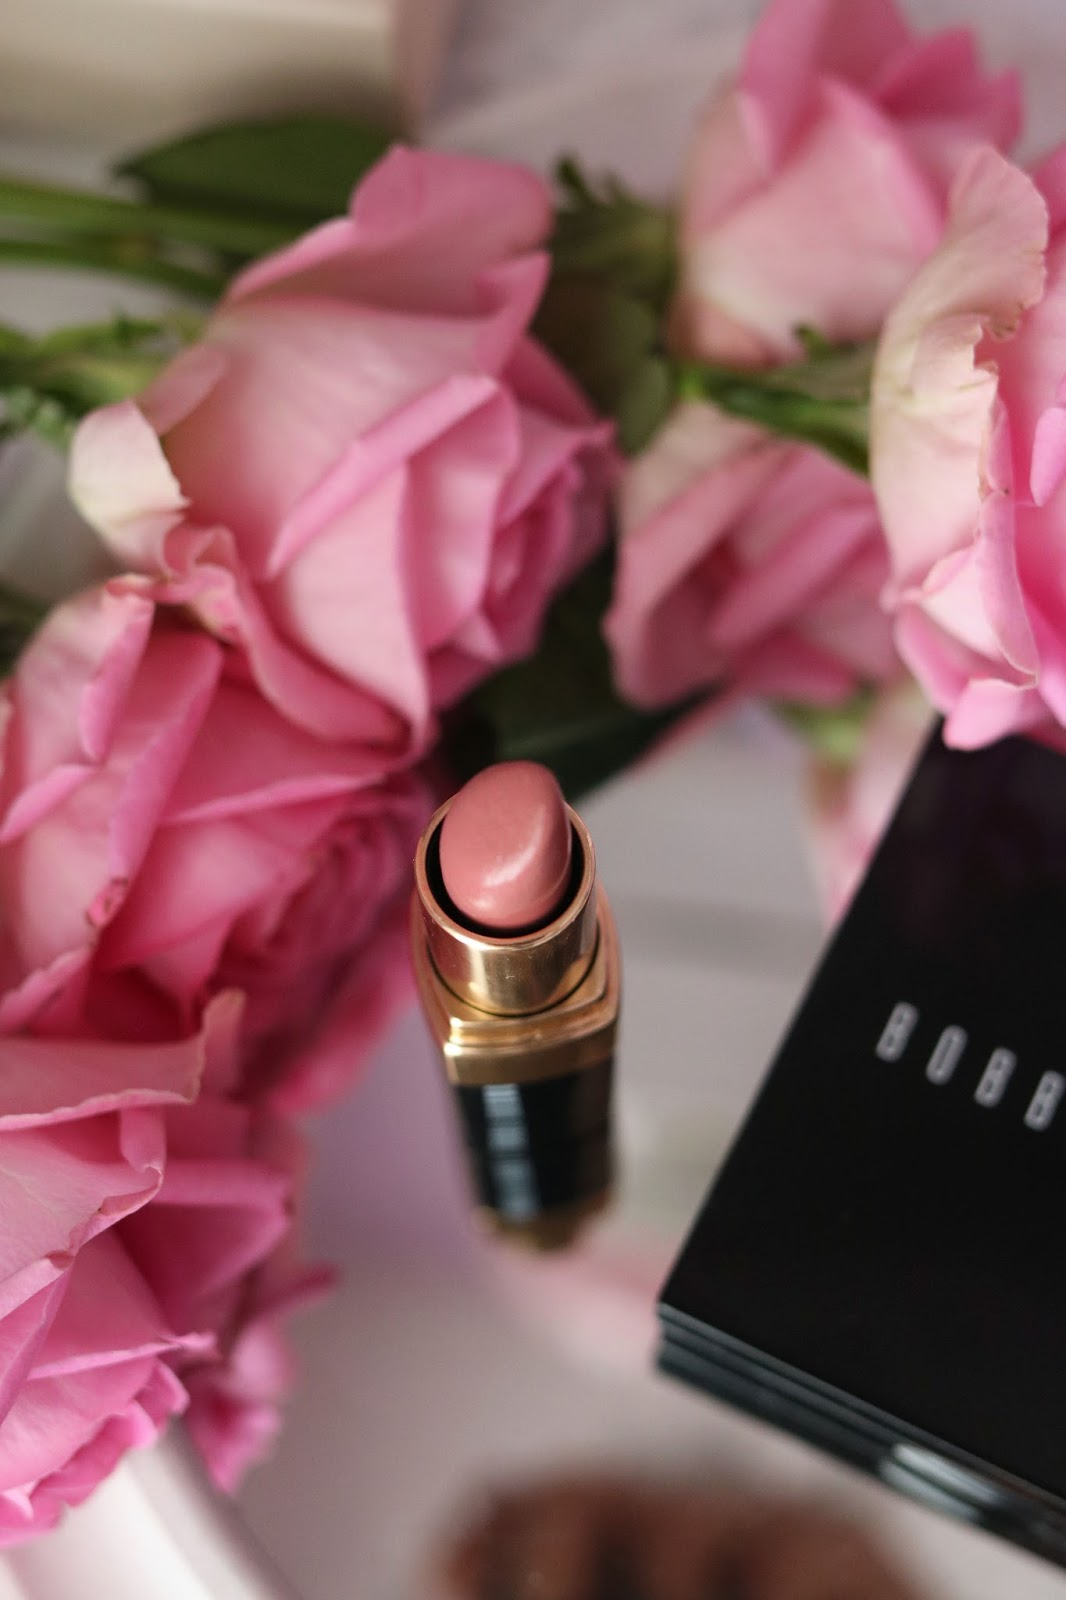 rosemademoiselle , rose mademoiselle ,BOBBI BROWN, OCTOLY , SHIMMER BRICK ROSE , LIP COLOR PALE PINK 21, BLUSH , HIGHLIGHTER , MELI MELO , SUBLIMER , NUDE LOOK , NATURAL LOOK , NUDE , NATURELLE , ROSE ,swatchs ,revue , avis, paris , blog beauté